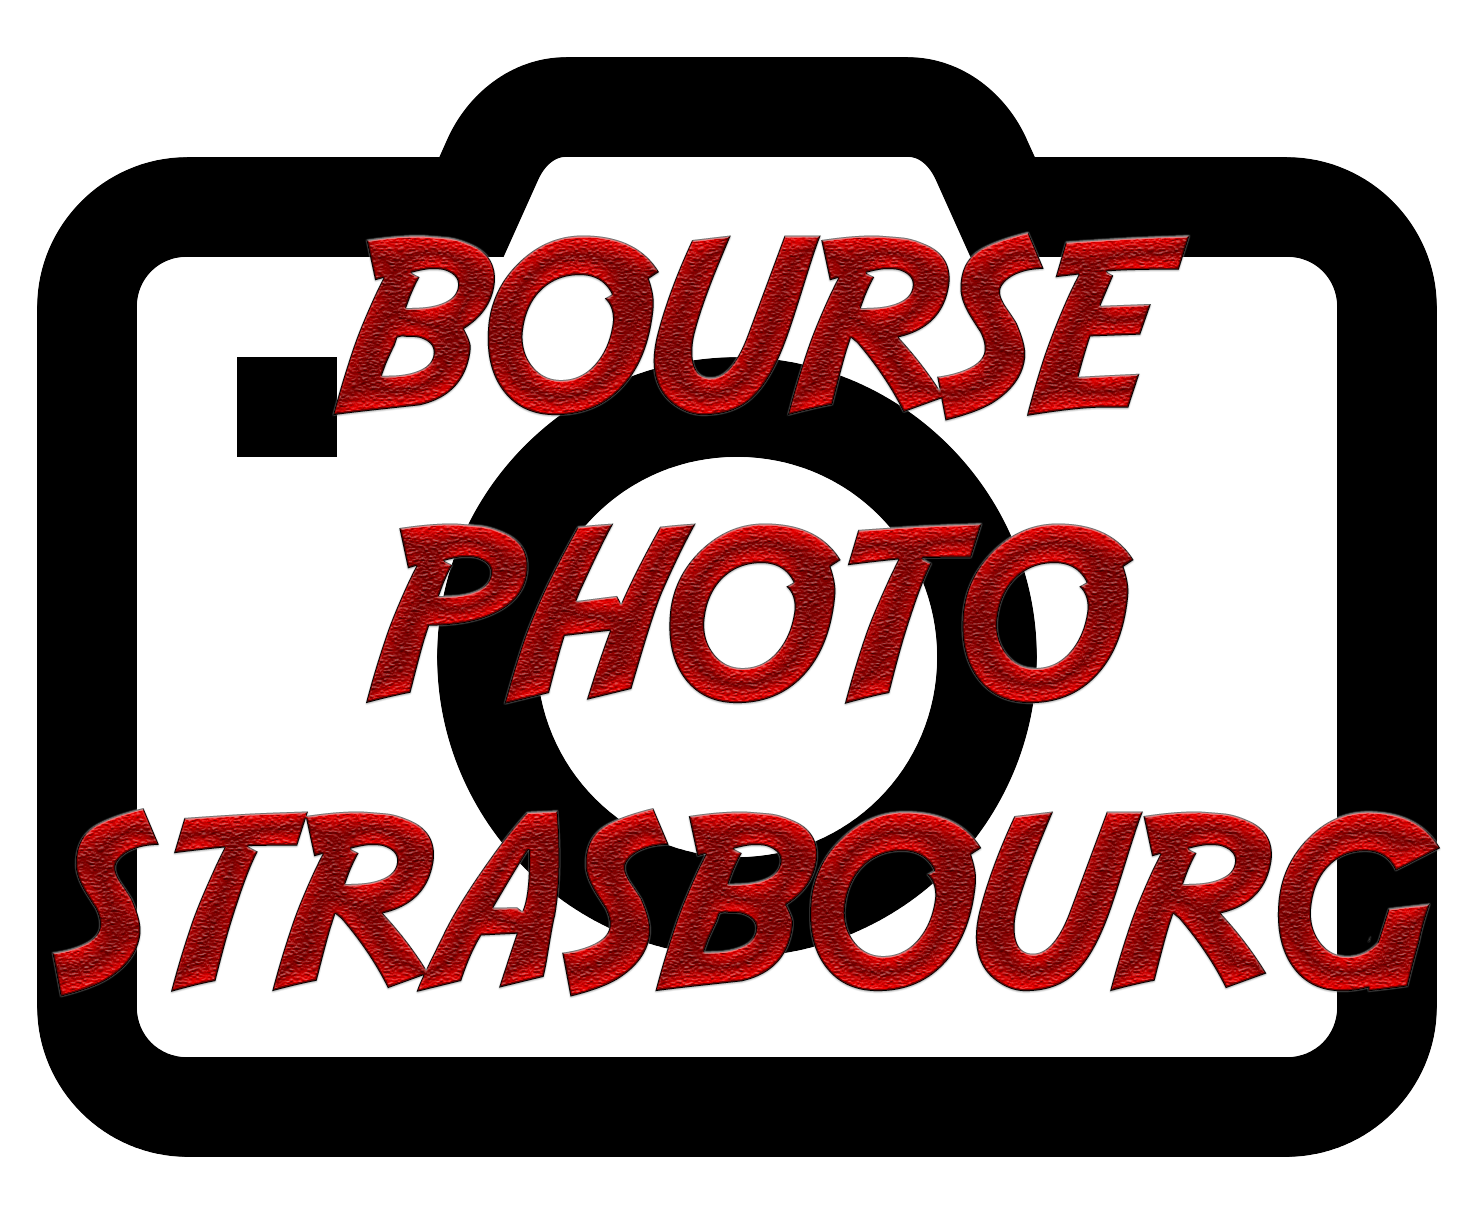 Bourse Photo de Strasbourg